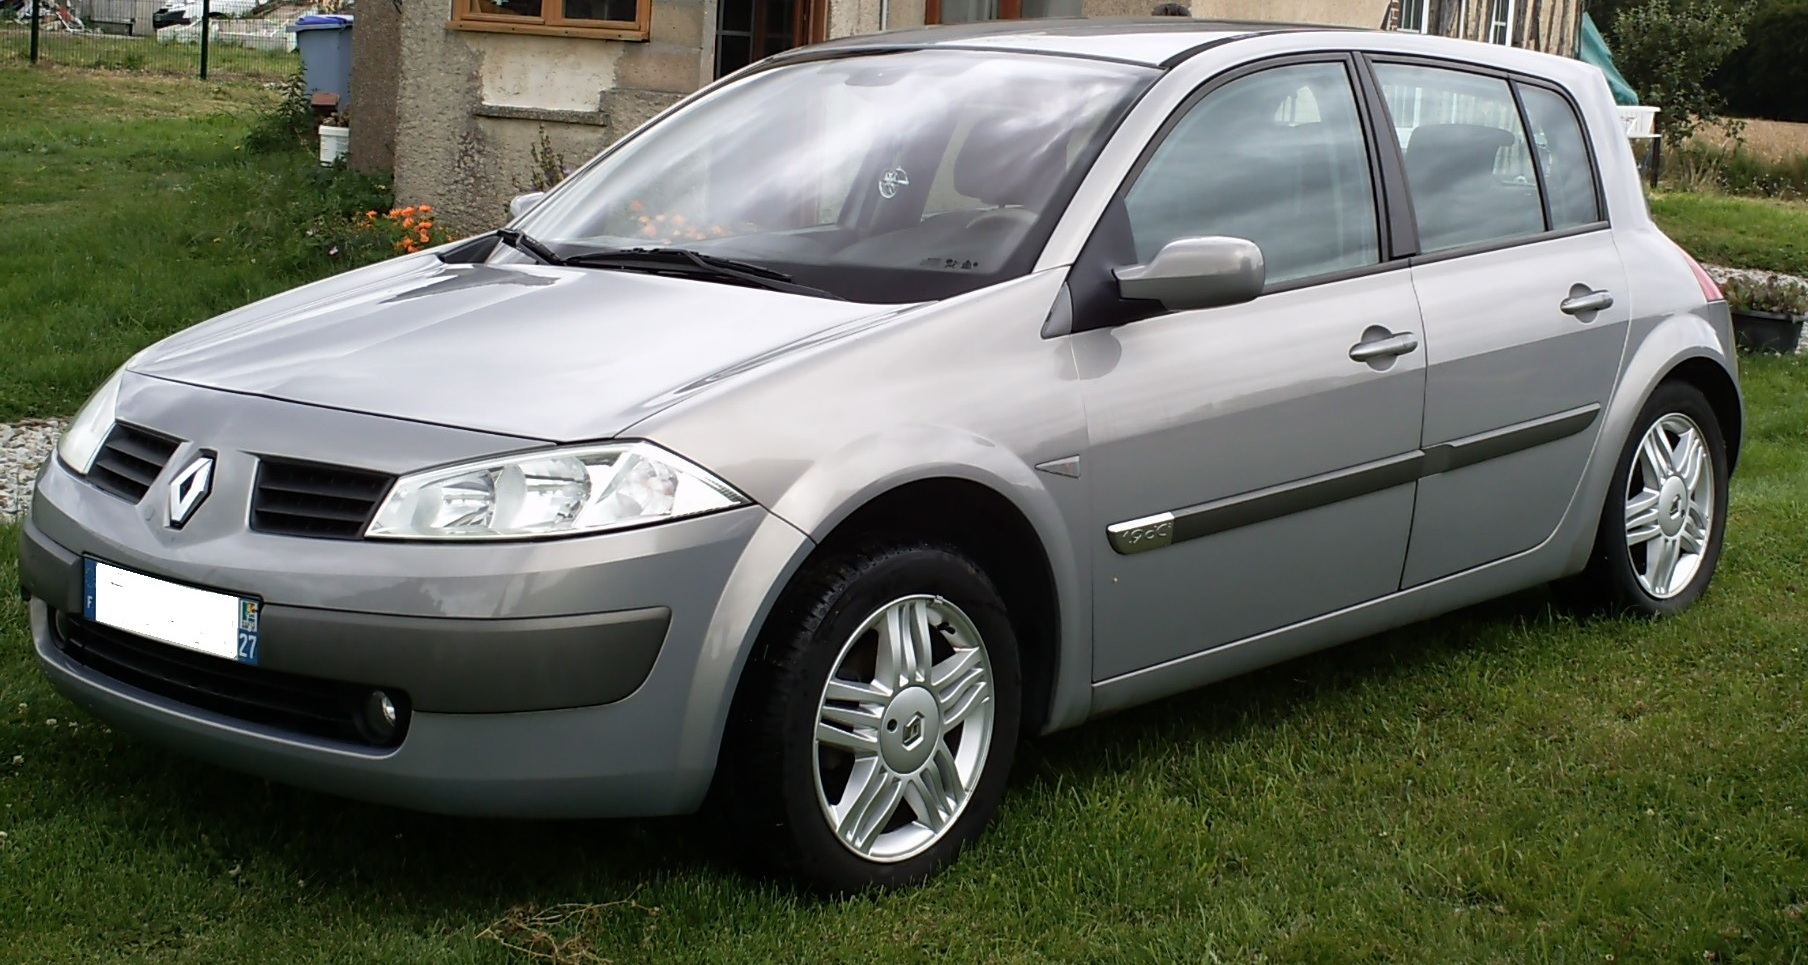 renault megane ii hatchback 120 slideshow. Black Bedroom Furniture Sets. Home Design Ideas